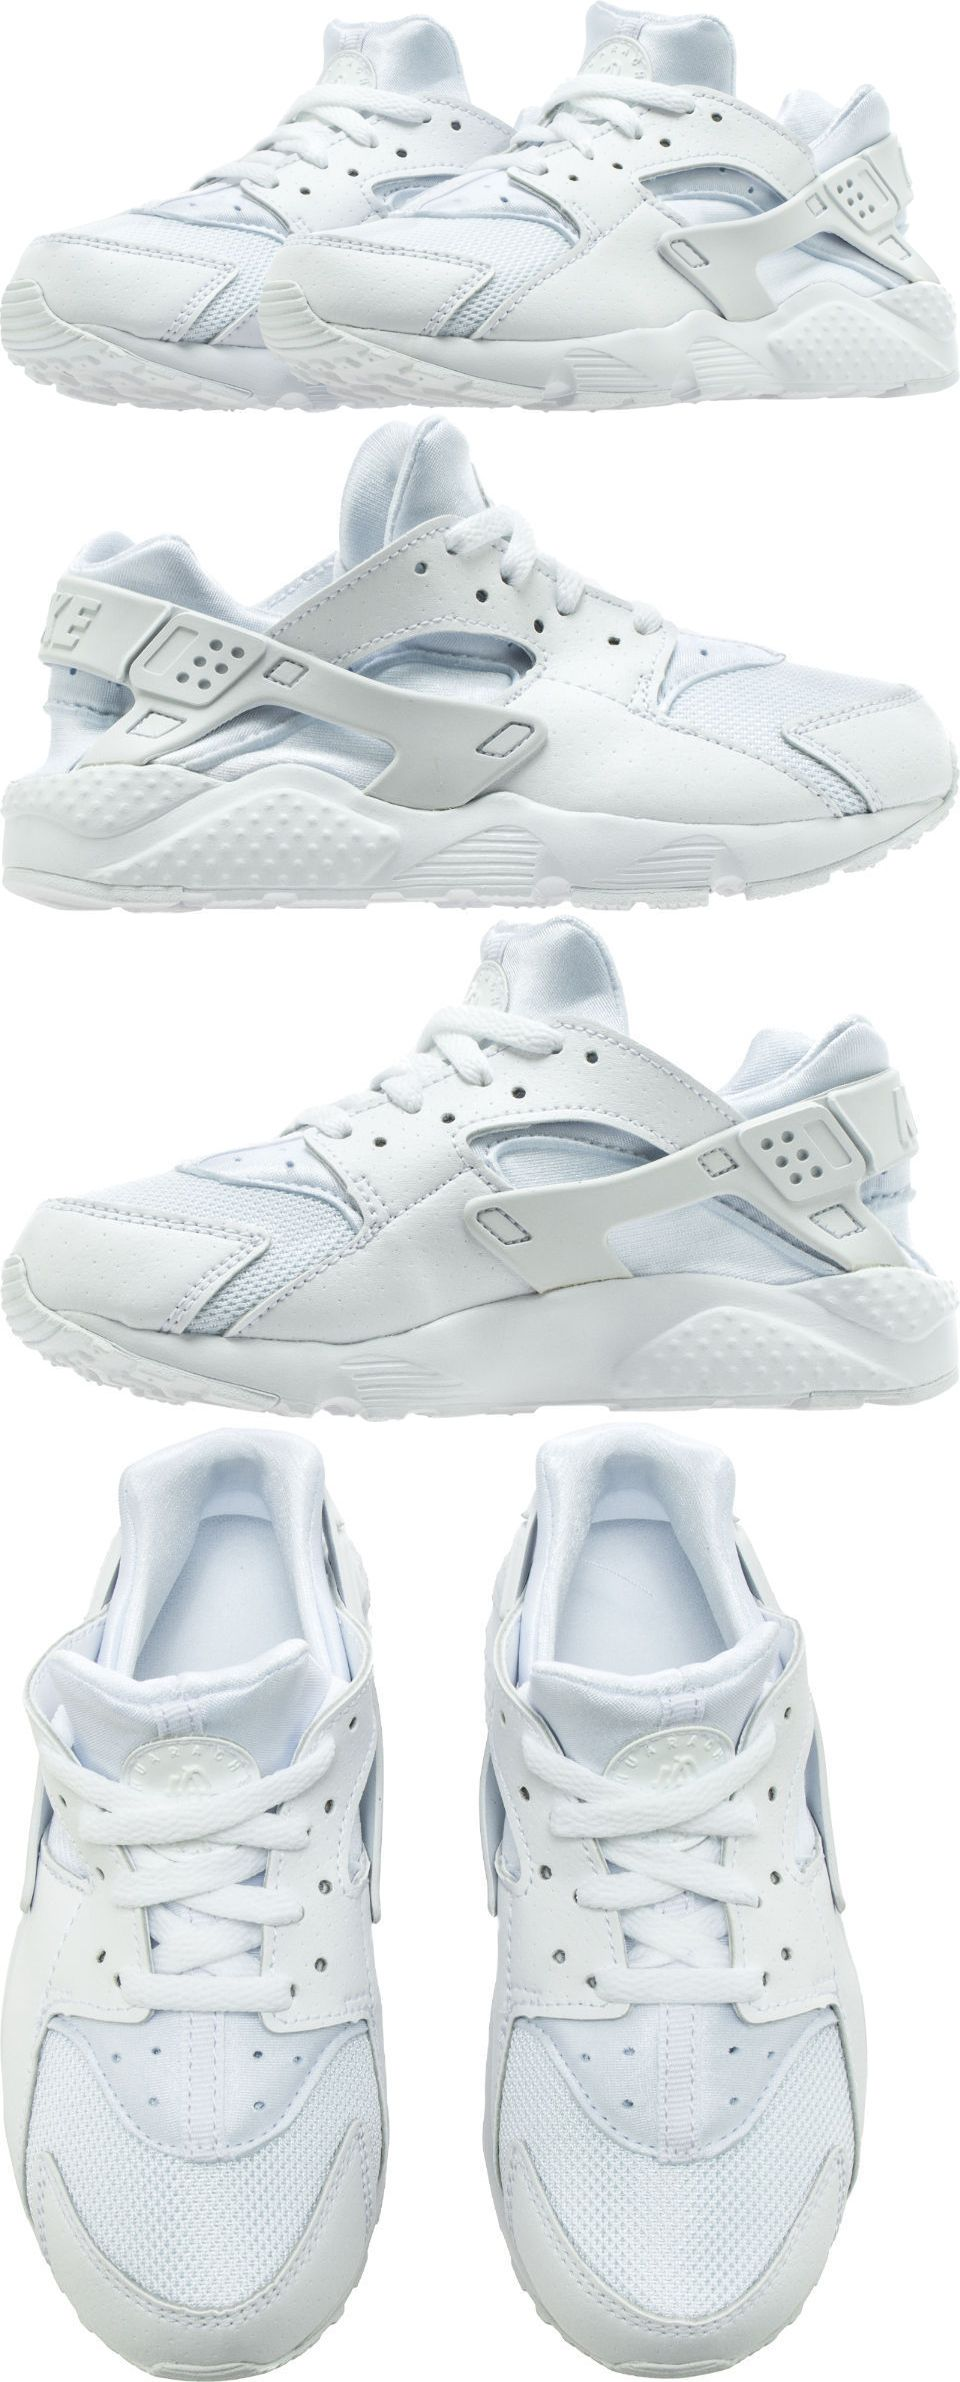 release date: e1961 e4de6 Boys Shoes 57929 Kids Nike Huarache Run (Ps) 704949-110 White White Brand  New Sizes 13.5C-2.5Y - BUY IT NOW ONLY 34.97 on eBay!